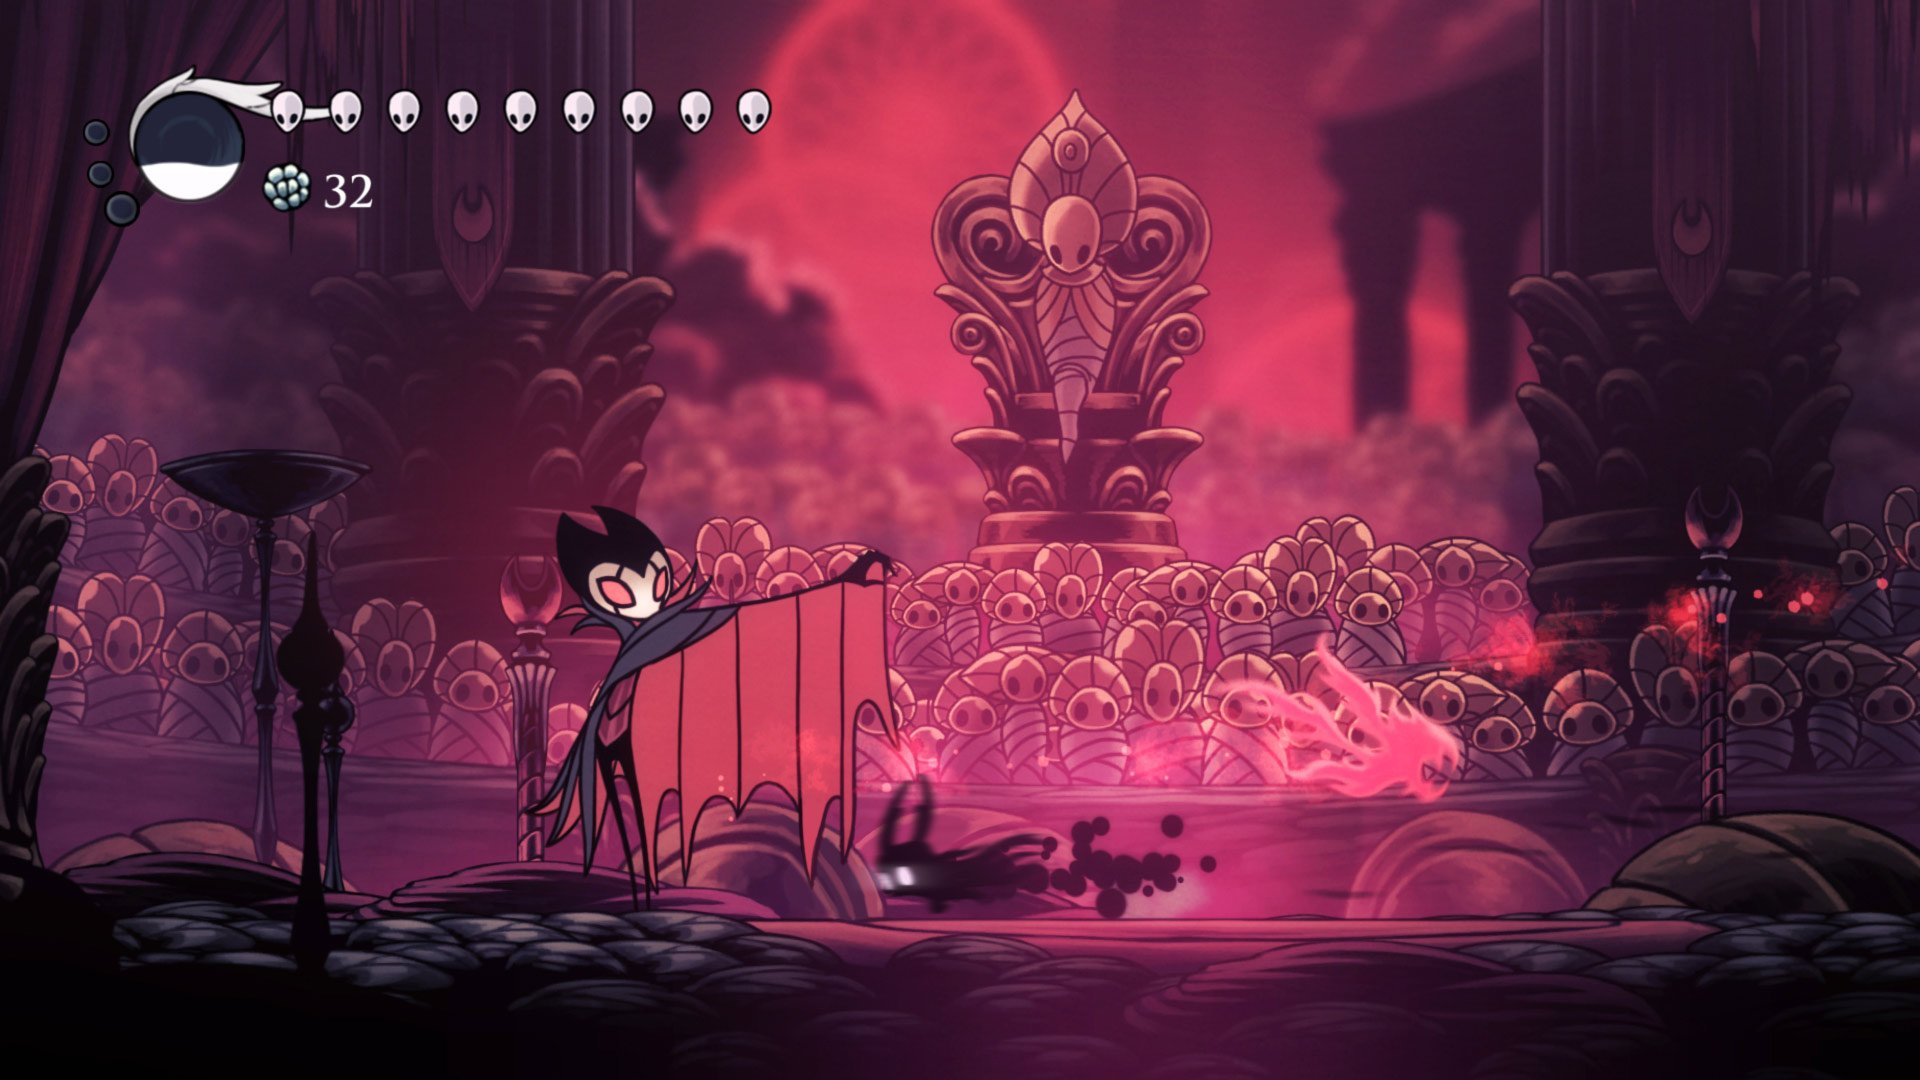 Hollow Knight Voidheart Edition Review Ps4 Push Square We've gathered more than 5 million images uploaded by our users and sorted them by the most popular ones.